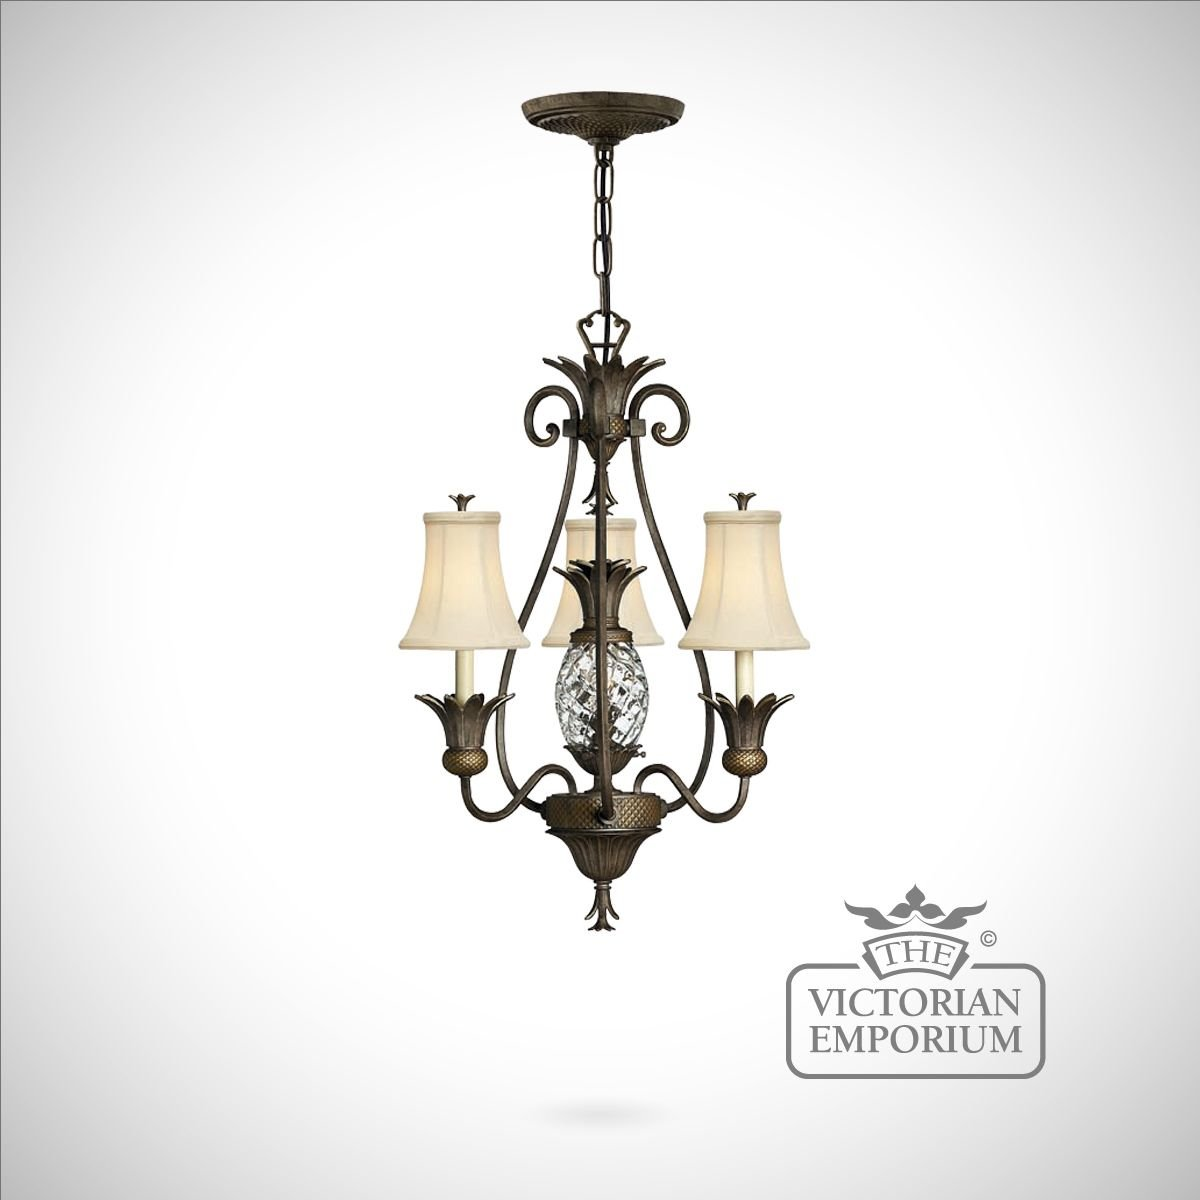 Plantation style 3 light chandelier ceiling chandeliers - Chandelier ceiling lamp ...